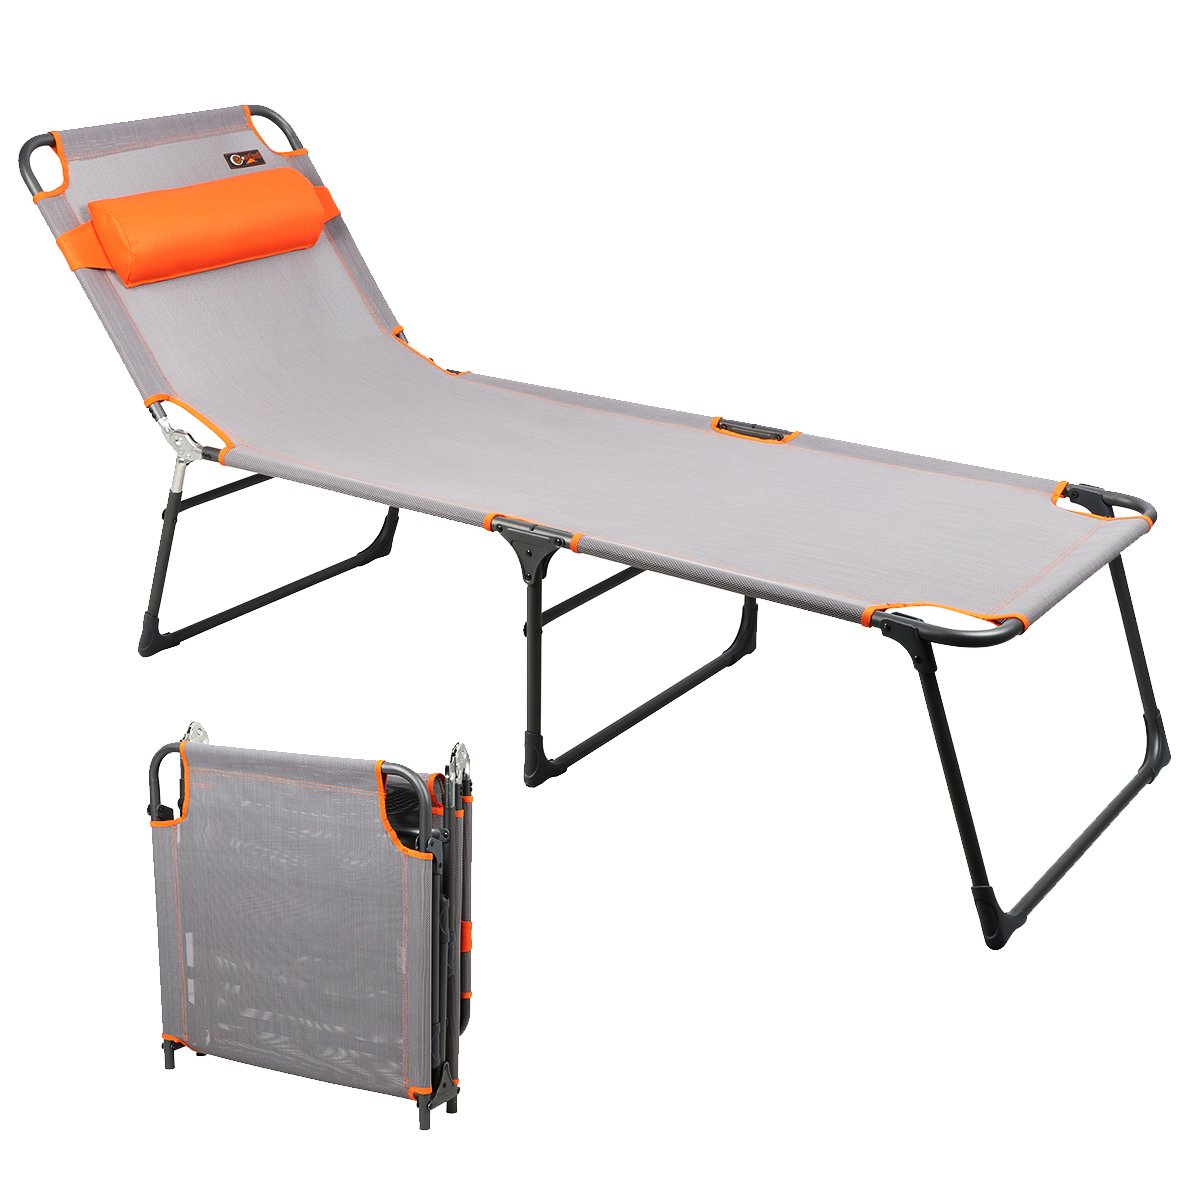 PORTAL Adjustable Folding Reclining Lounger